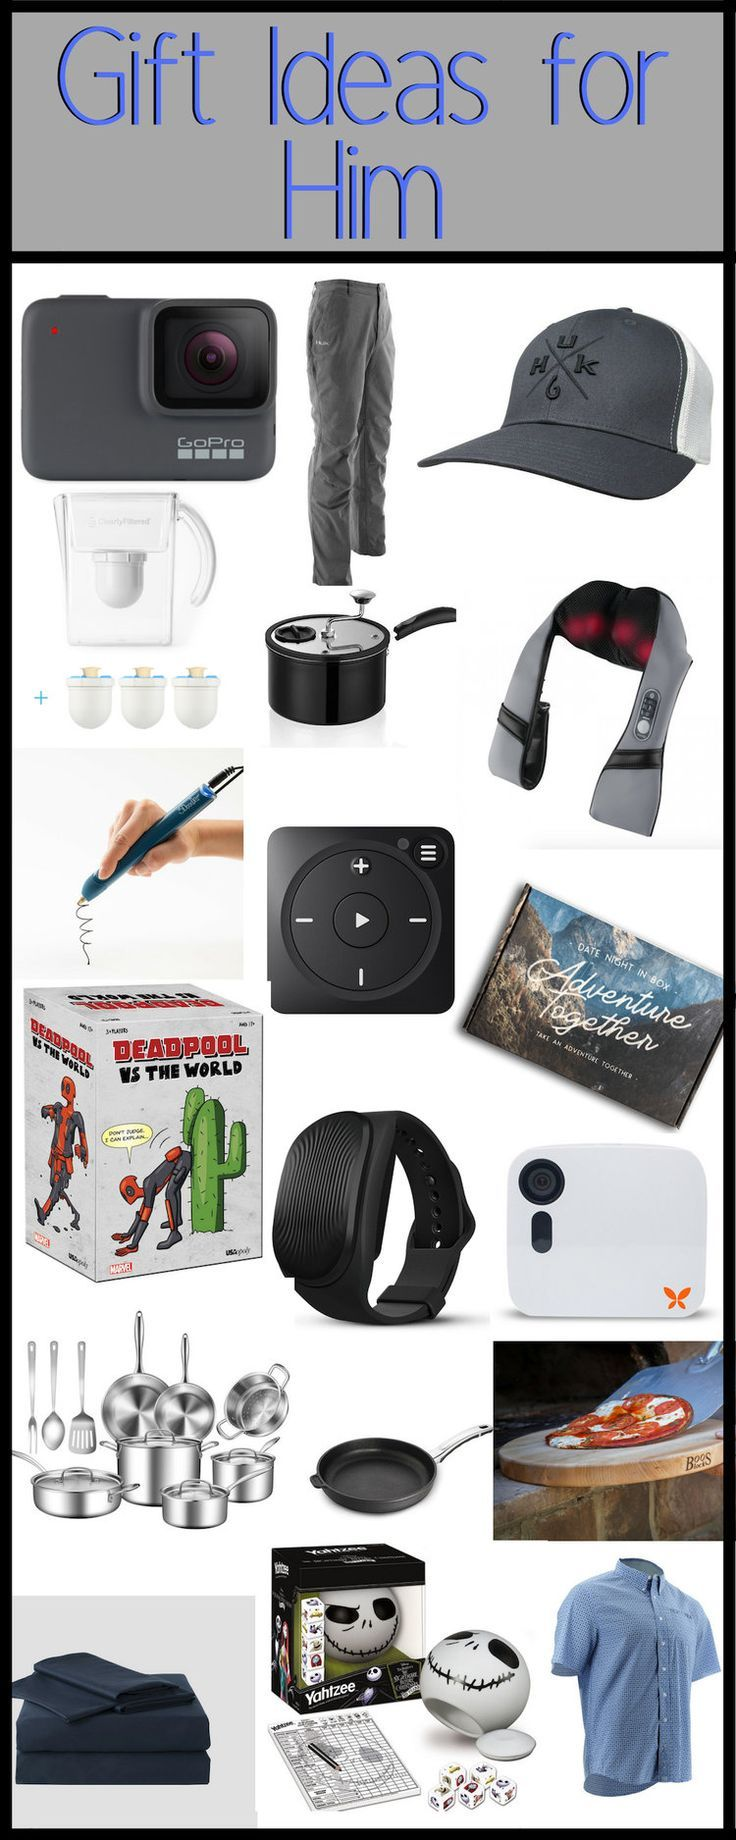 mens holiday gift guide here are some great gift ideas for husband boyfriend son uncle grandpa etc all the best ideas for gifts for men